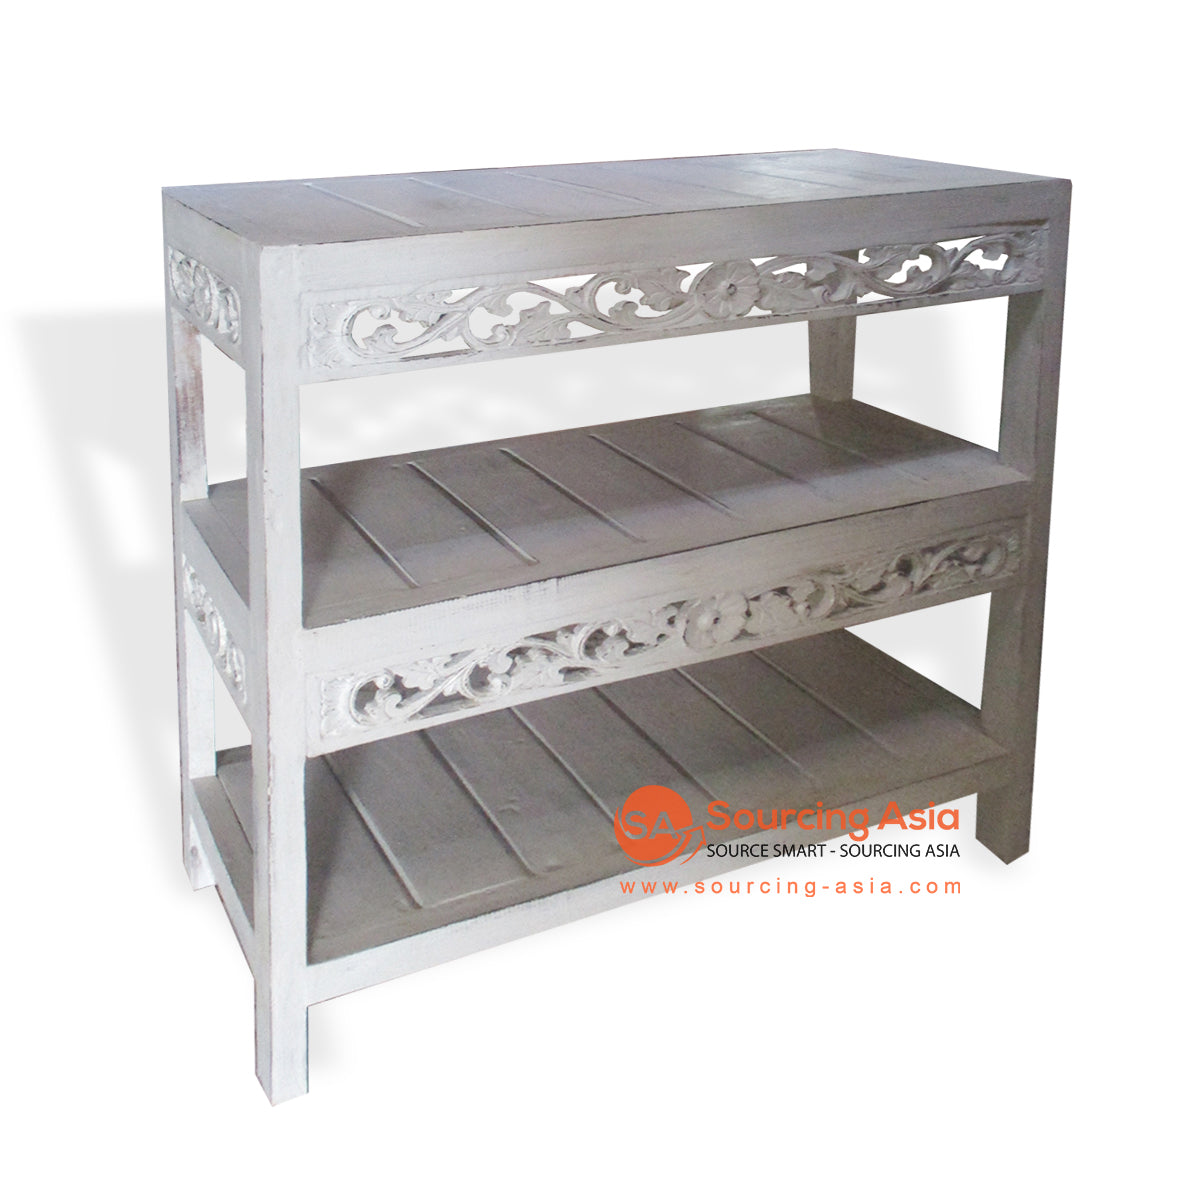 THE020 DOUBLE CONSOLE TABLE WHITE WASH